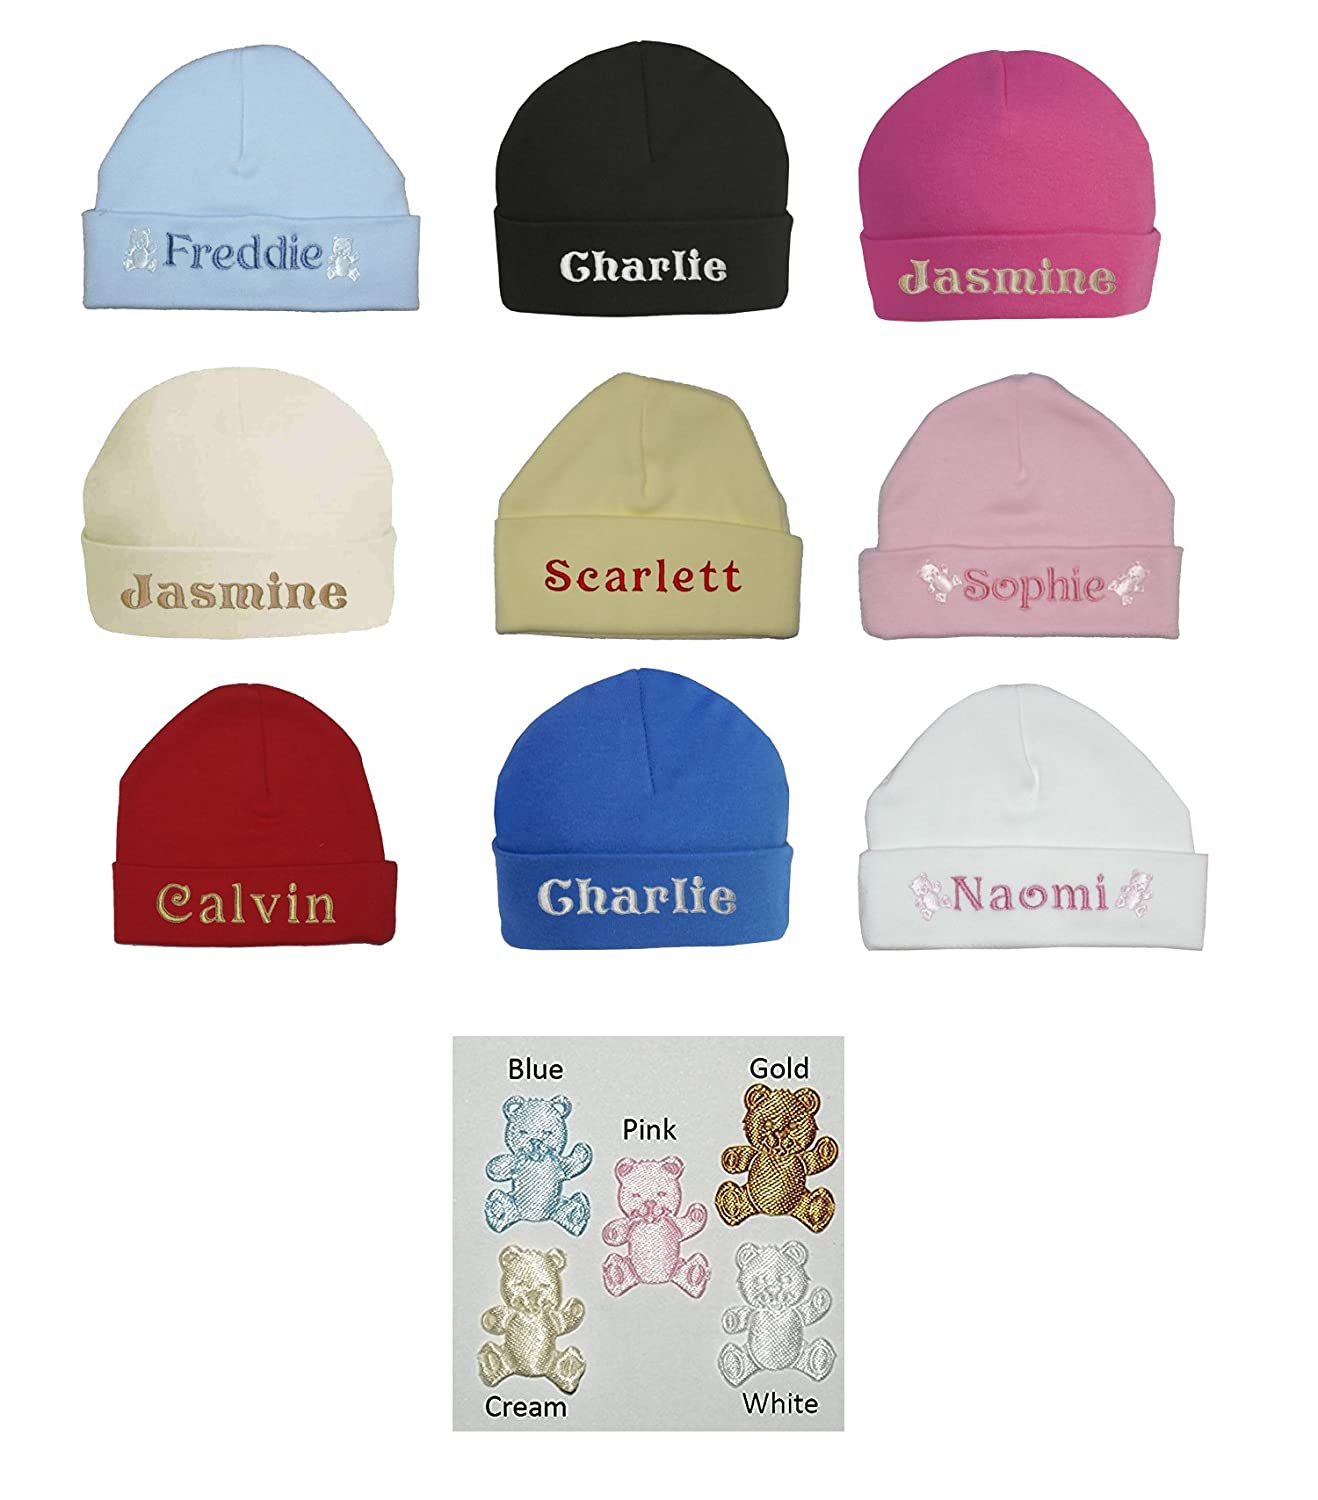 100% Super Soft Double Layered Cotton Personalised Embroidered Baby Hat - Available in sizes 0-3, 3-6 and 6-12 months and 9 colours to choose from Oh Sew Simple Single Baby Hat